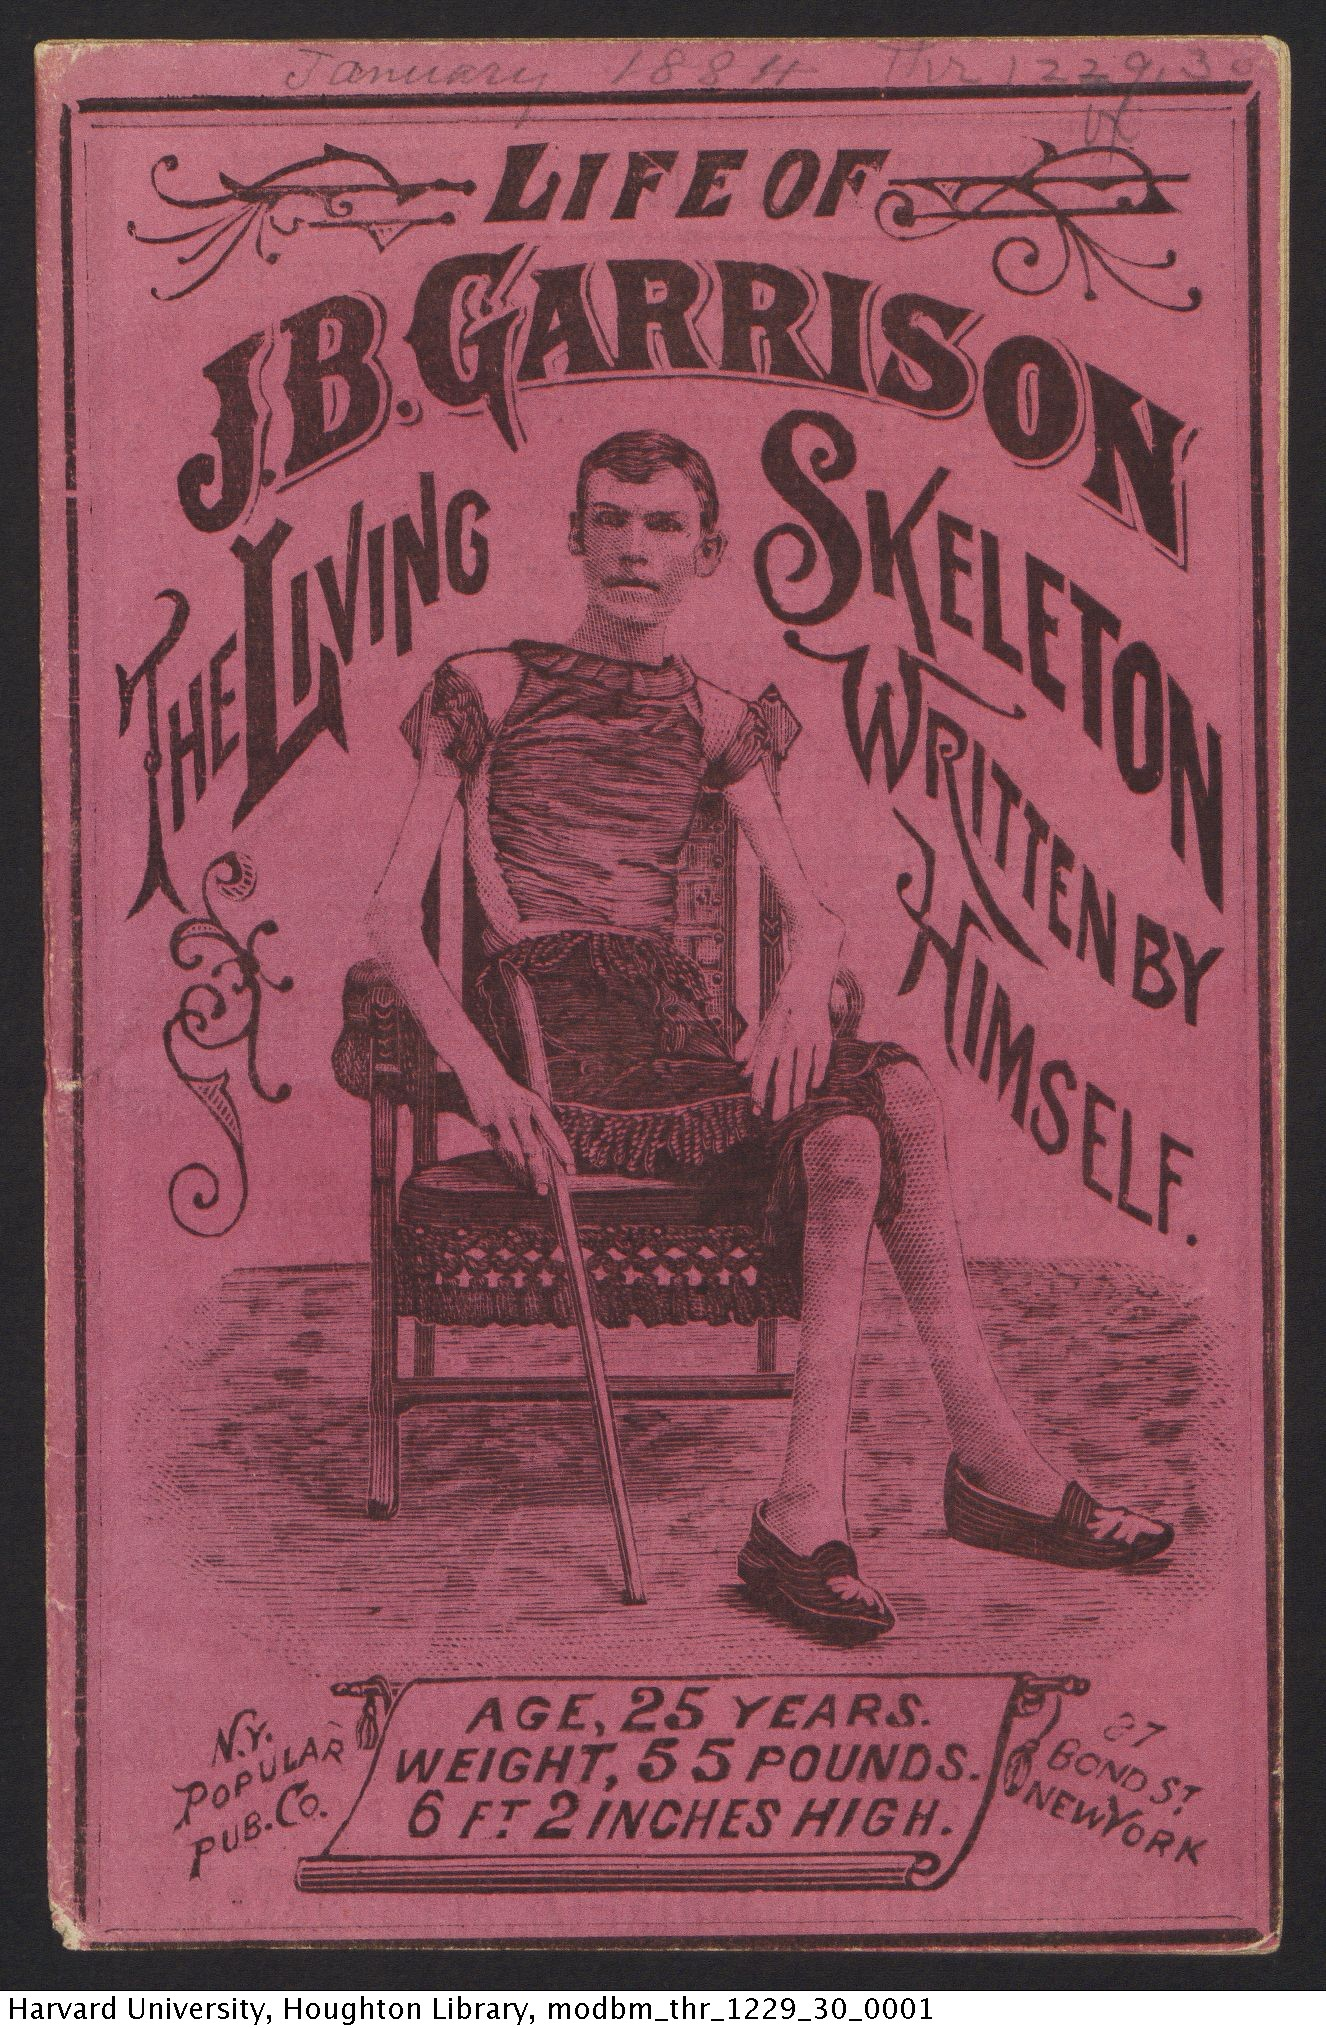 Garrison, J. B.,1858-. Life, recollections and experiences of J.B. Garrison, the Living skeleton. Thr 1229.30.